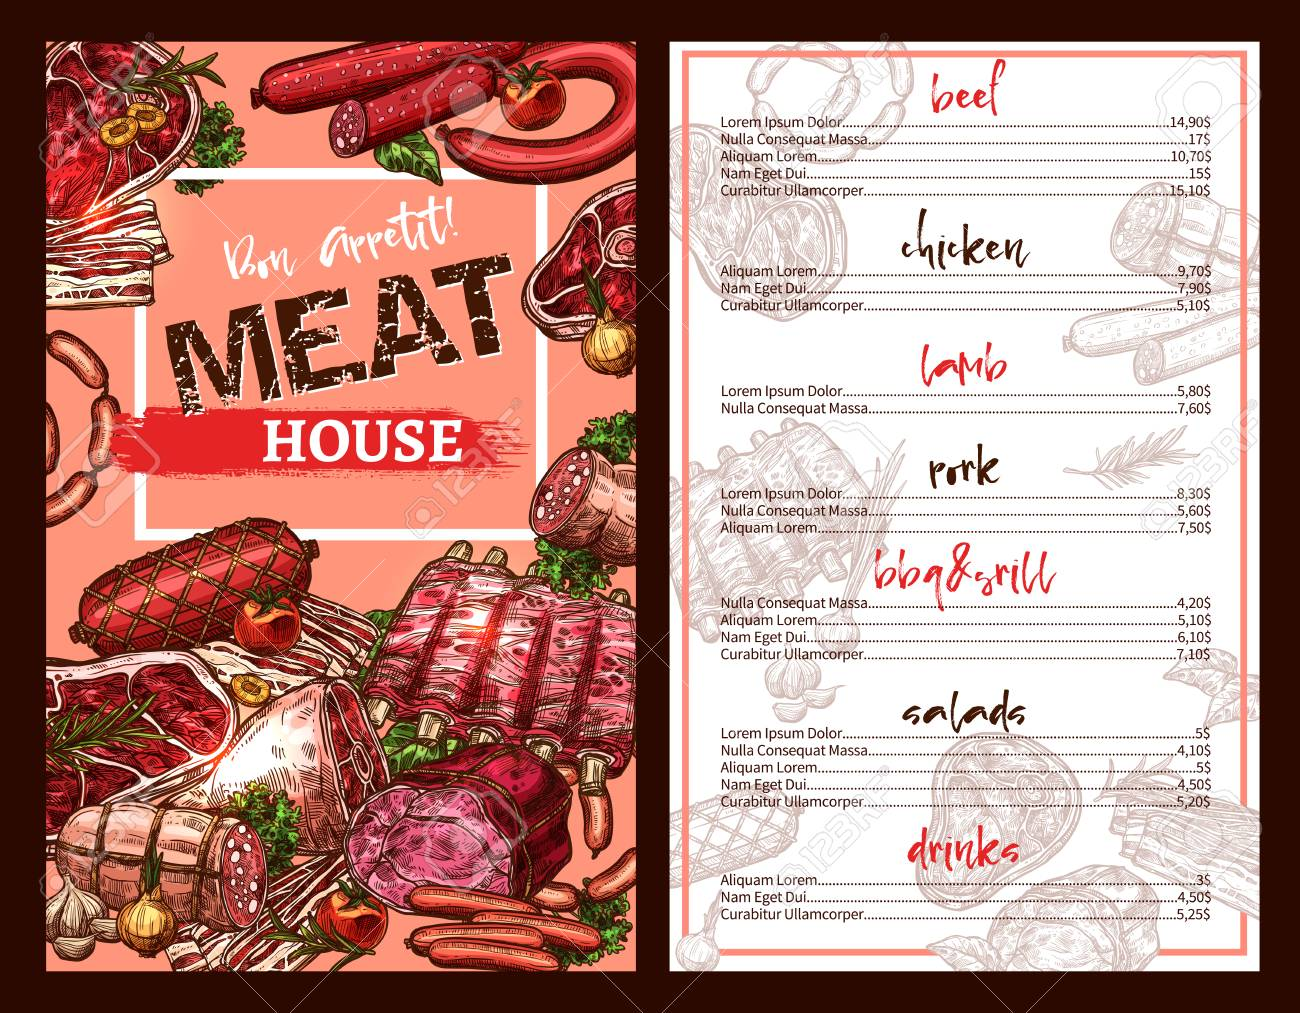 Food Menu Template | Meat House Restaurant Menu Template With Prices For Delicatessen